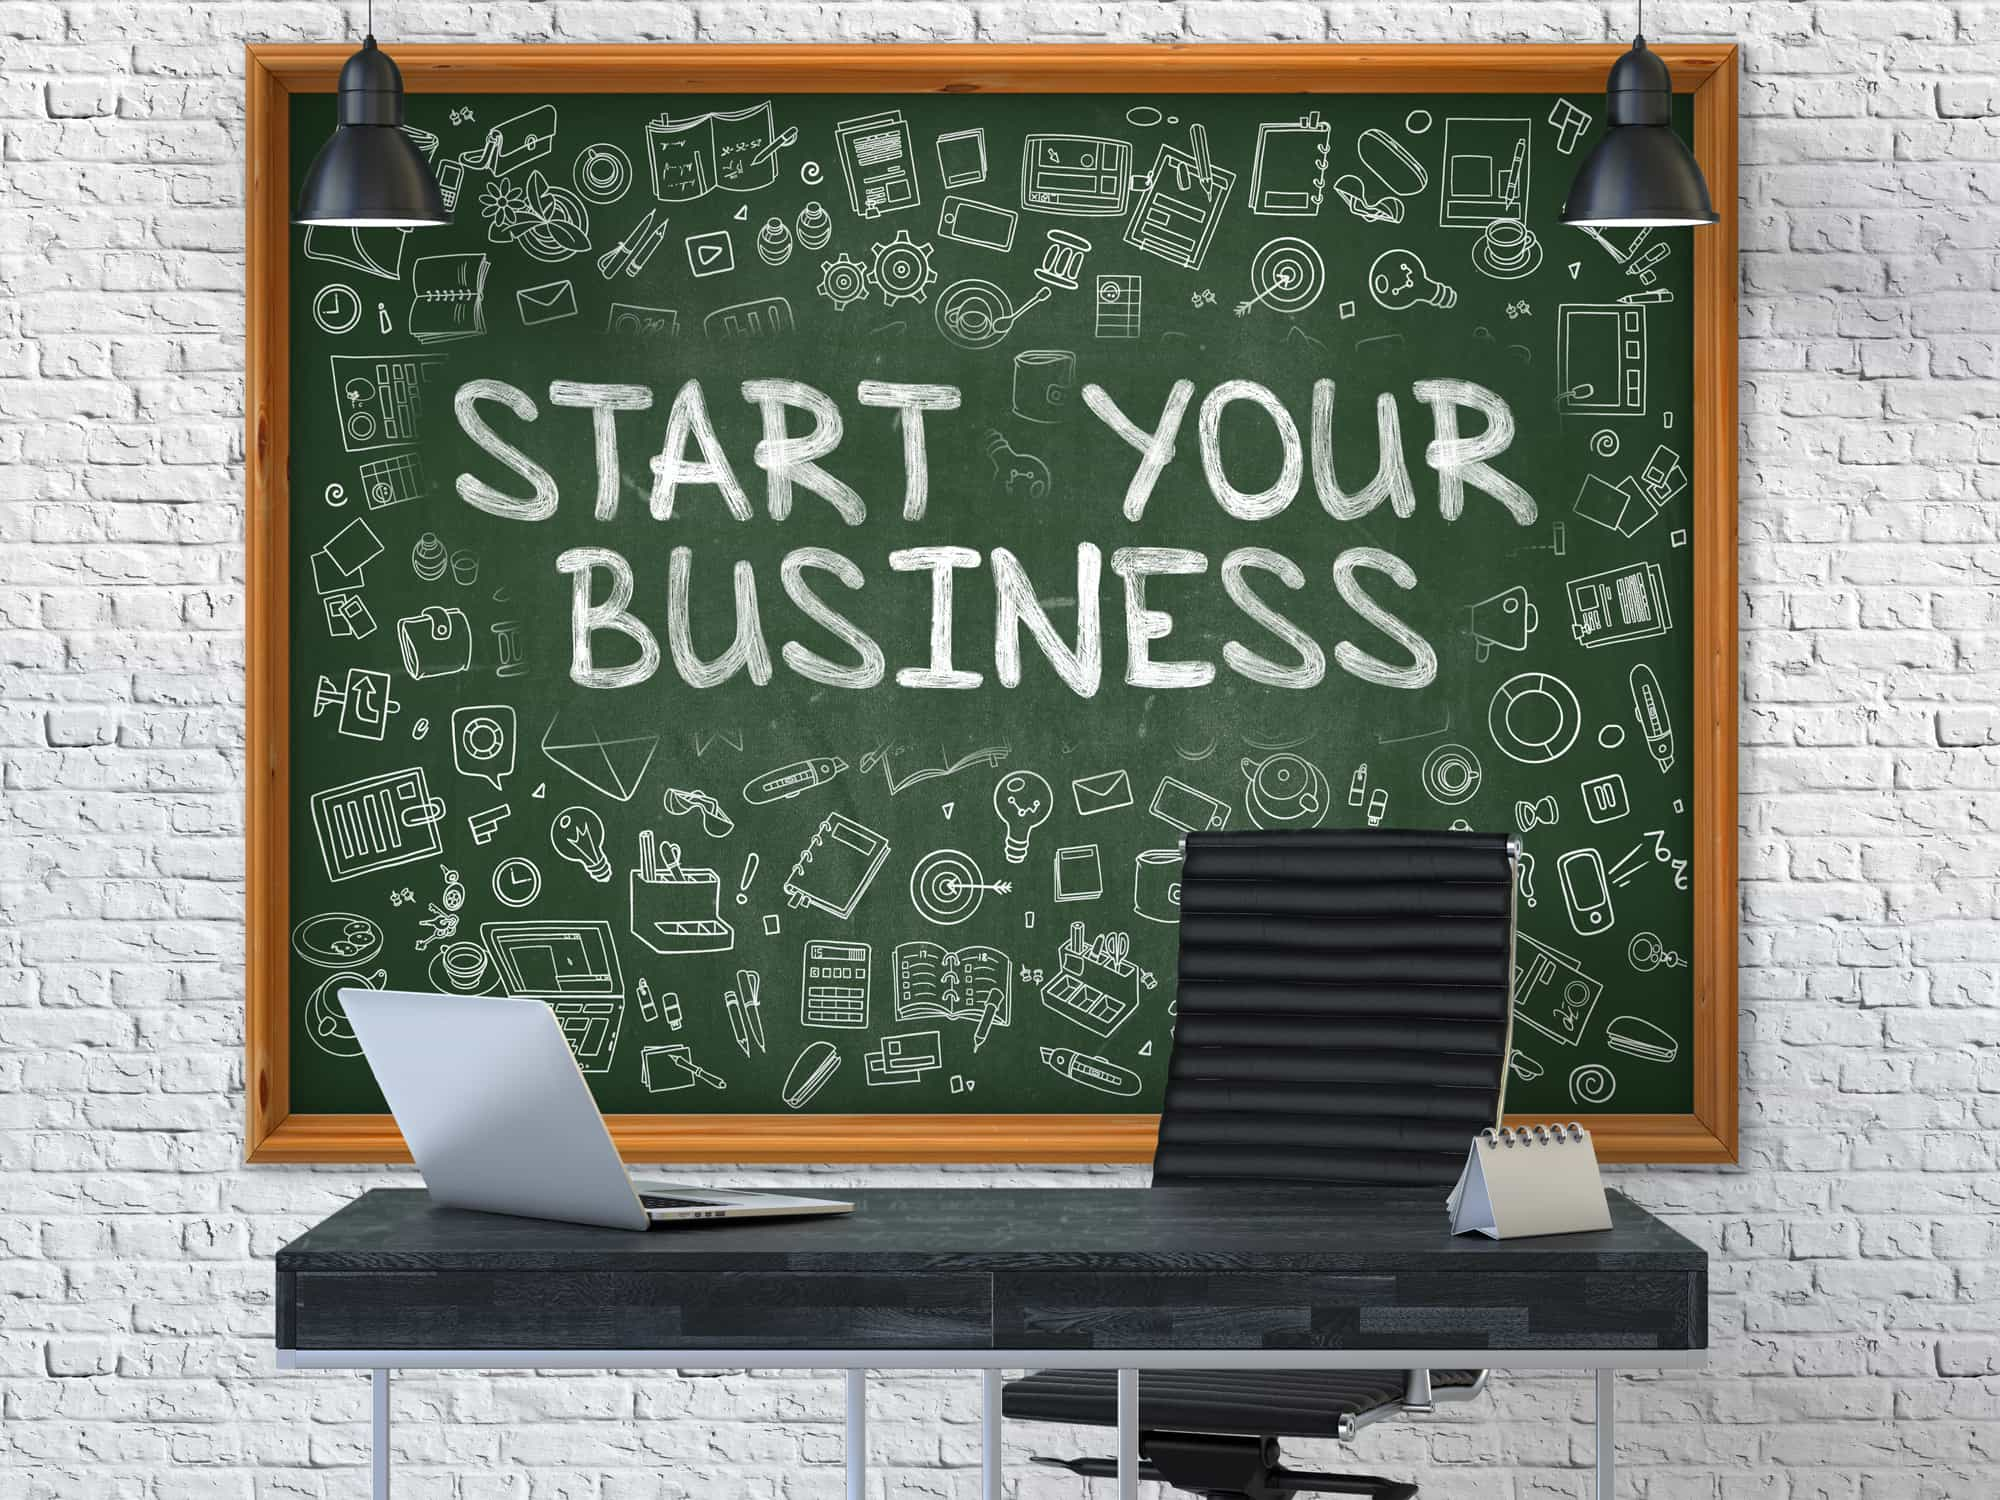 Hand Drawn Start Your Business on Green Chalkboard. Modern Office Interior. White Brick Wall Background. Business Concept with Doodle Style Elements. 3D.